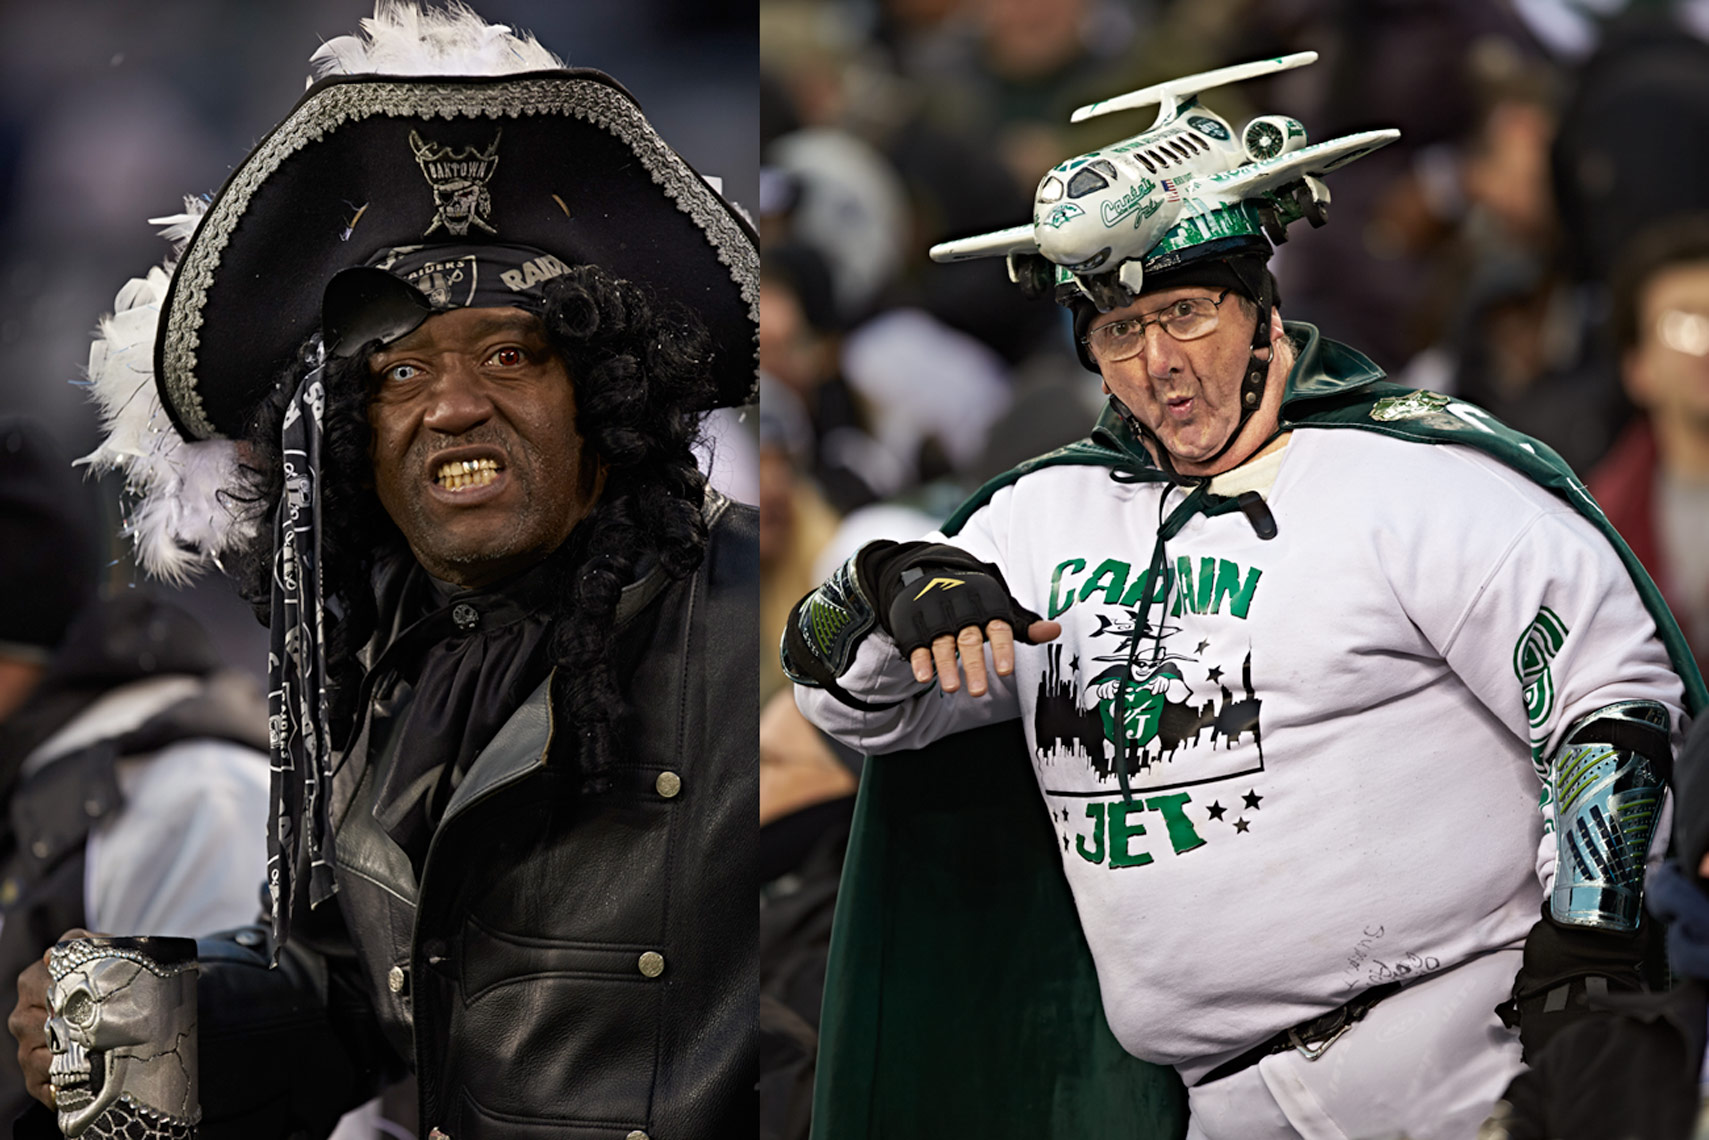 Oakland Raiders and New York Jets Football Fans Photo by Monte Isom